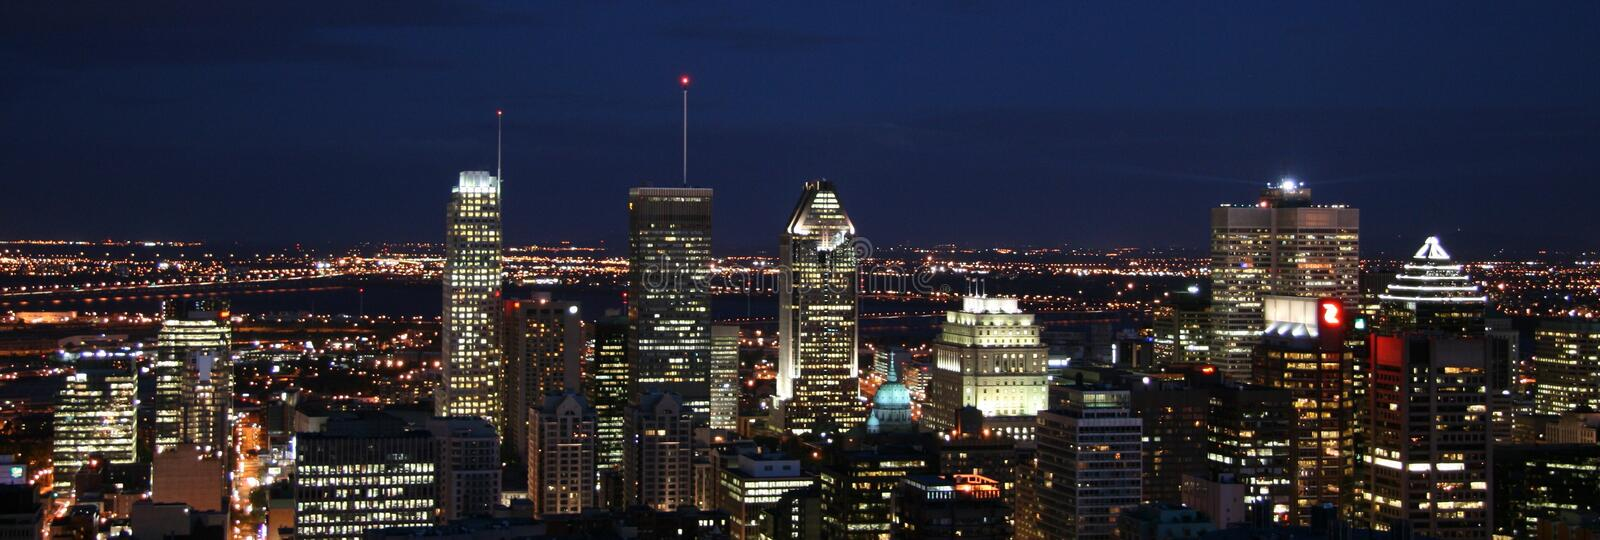 City scape montreal Canada Lights Skyline zdjęcie royalty free